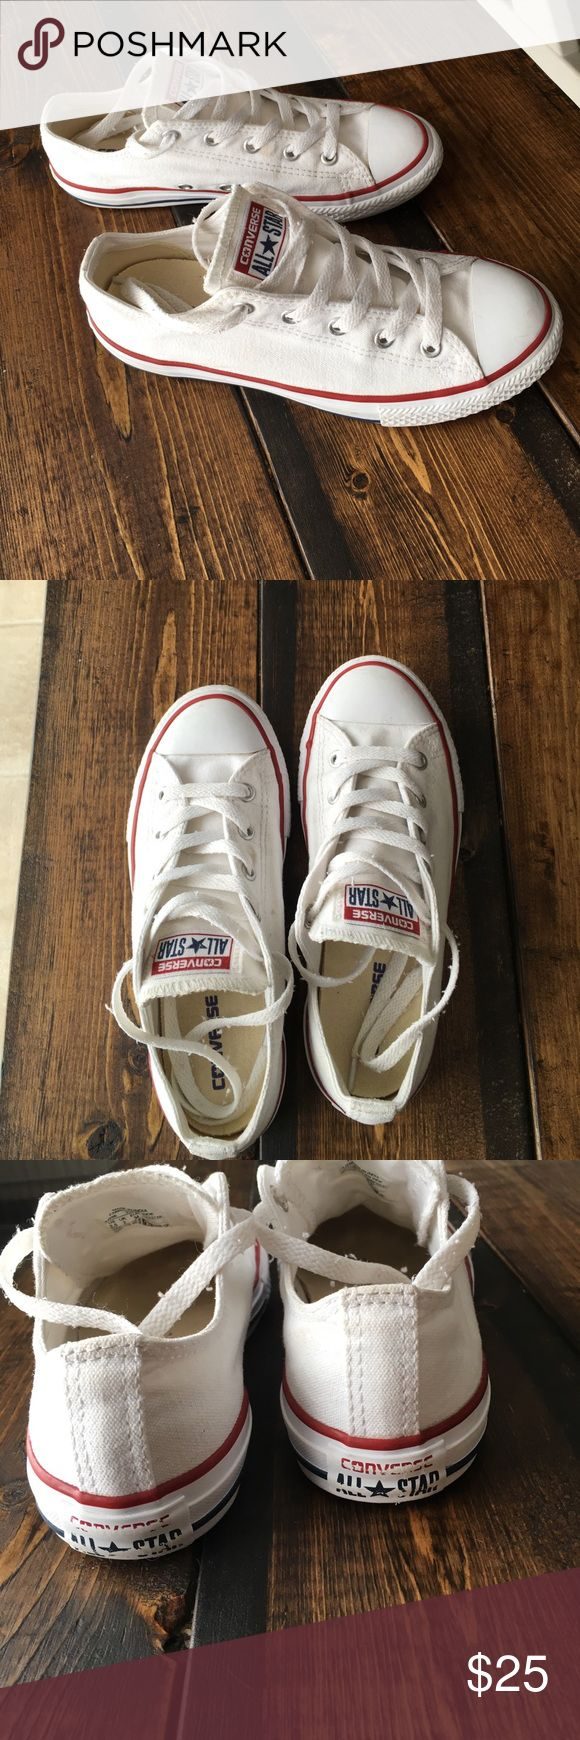 Converse All Stars white 2.5 youth ladies 5/5.5 White Converse All Stars in good used condition! Size 2.5 youth. I wore these and I wear a 5/5.5 ladies shoe size. Converse Shoes Sneakers